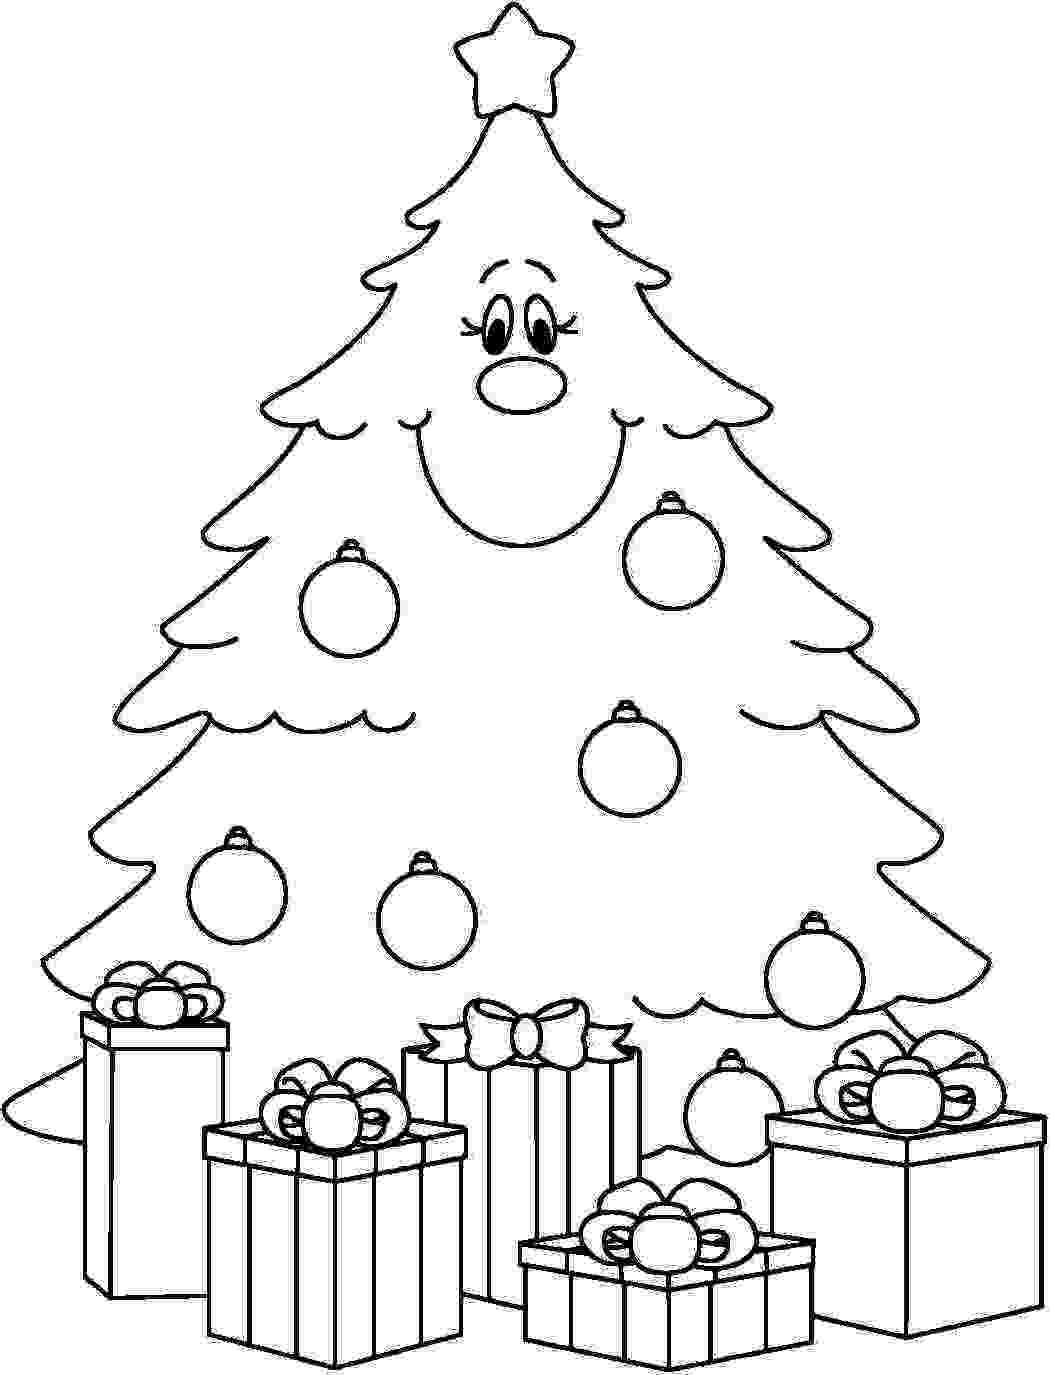 christmas tree coloring pages fun learn free worksheets for kid ภาพระบายส วน coloring tree pages christmas